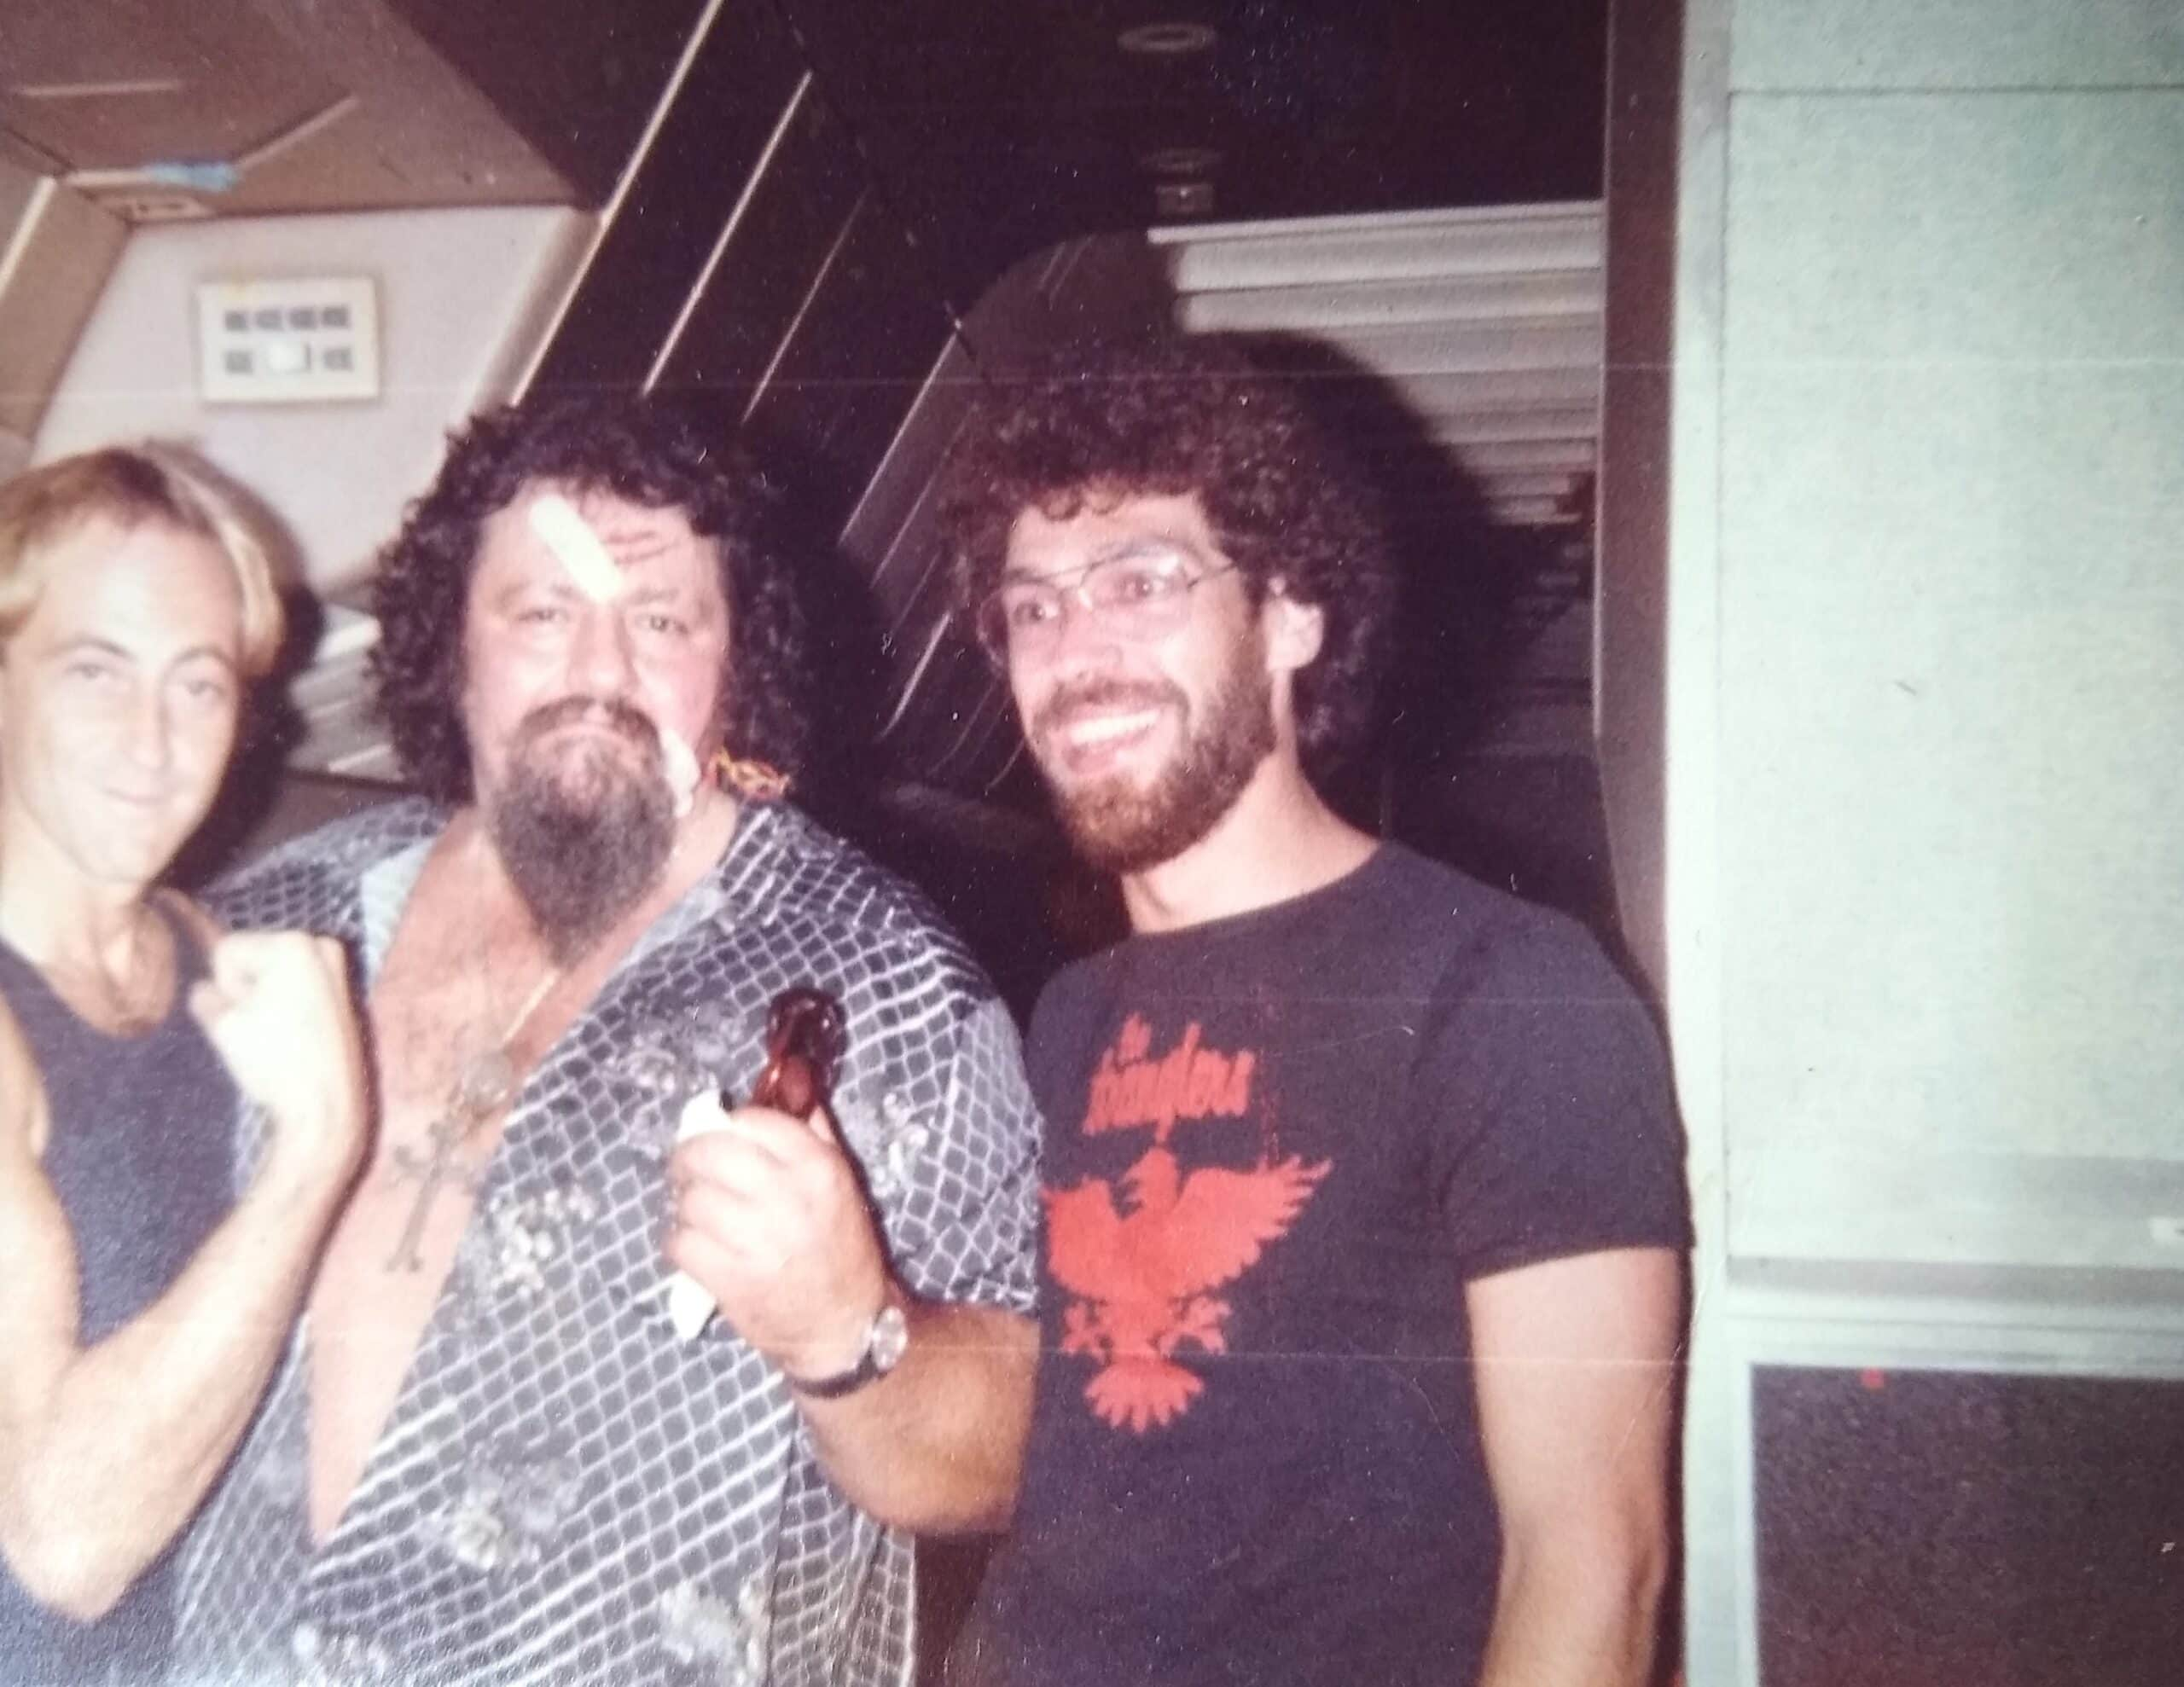 """A bandaged """"Capt."""" Lou Albano (middle) and Ken Sander (right) on that fateful plane ride in 1984."""